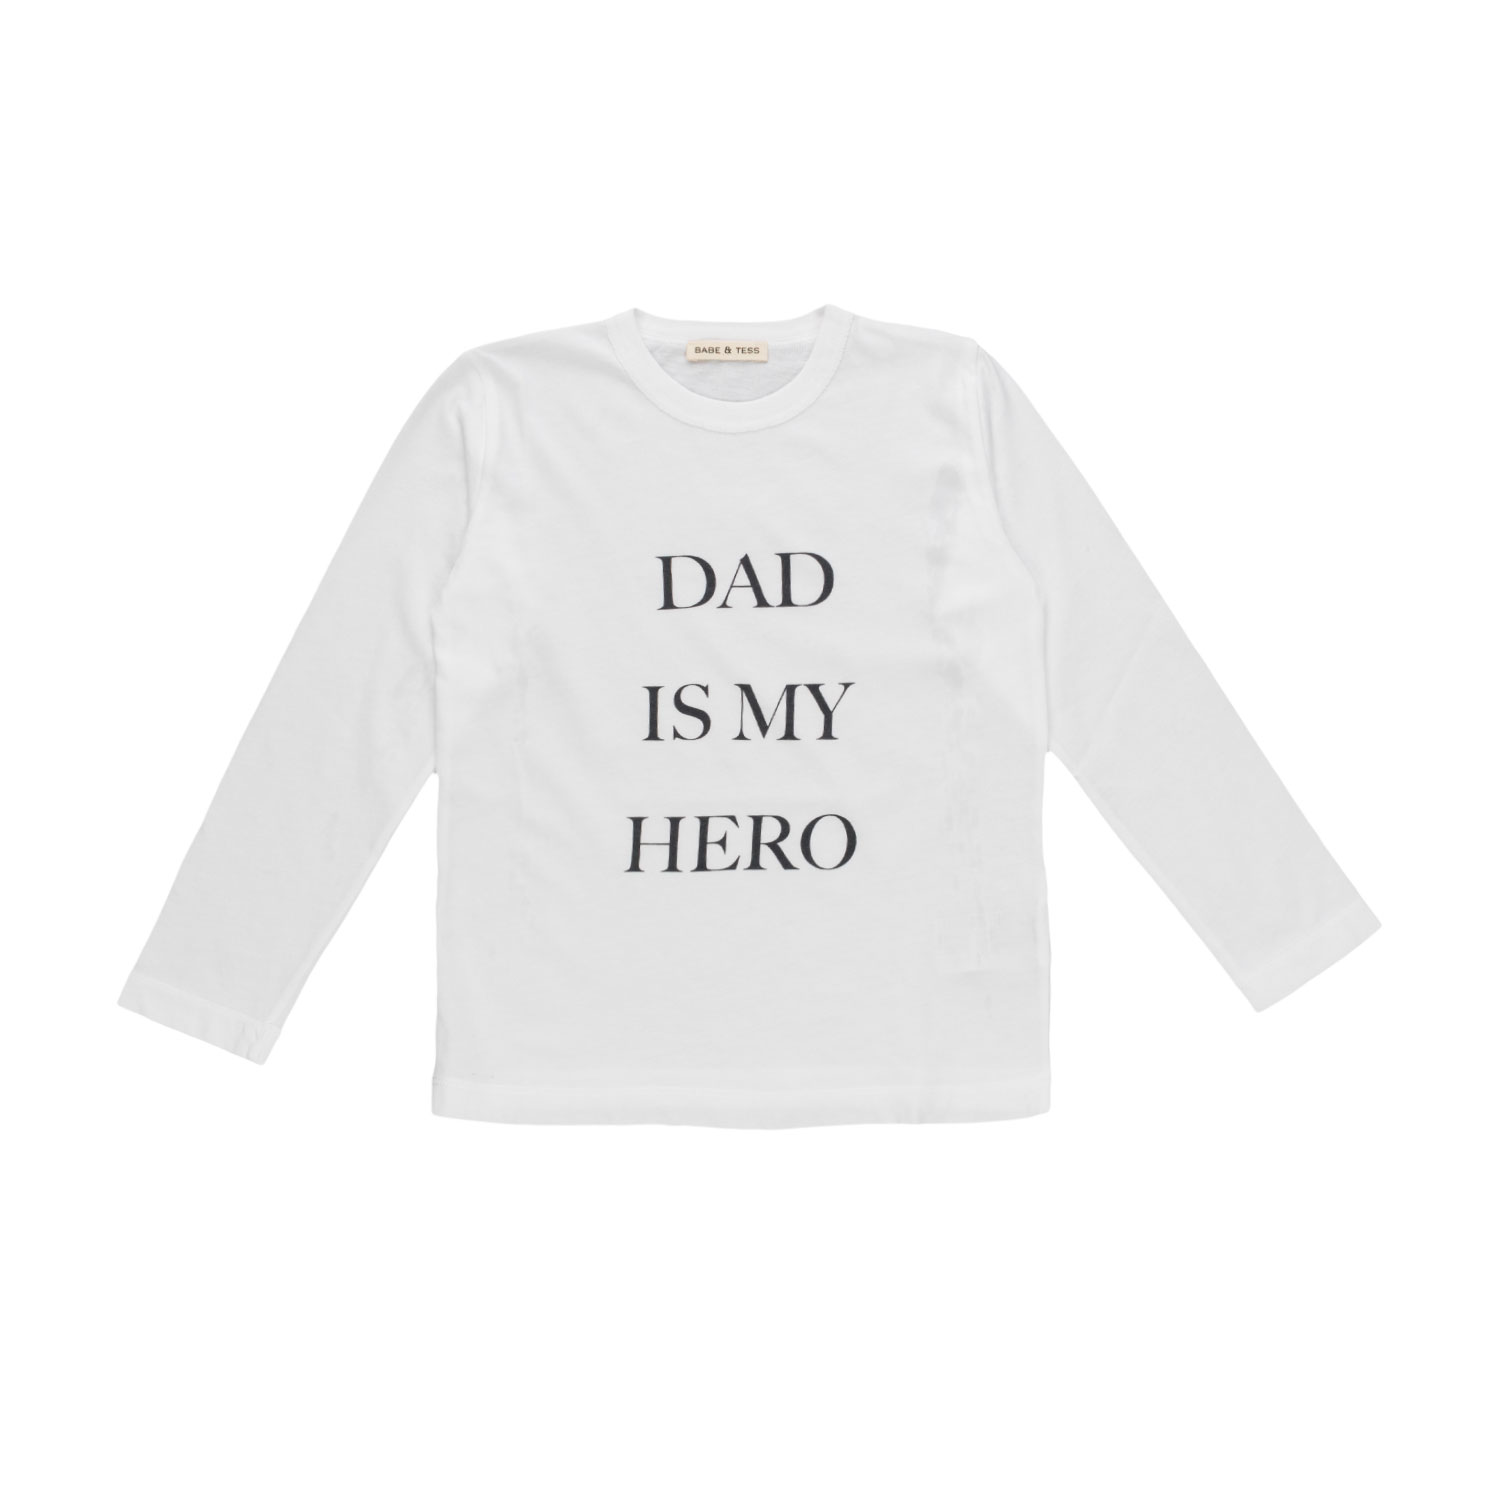 621a267f Babe & Tess - Girl Dad Is My Hero T-Shirt - annameglio.com shop online